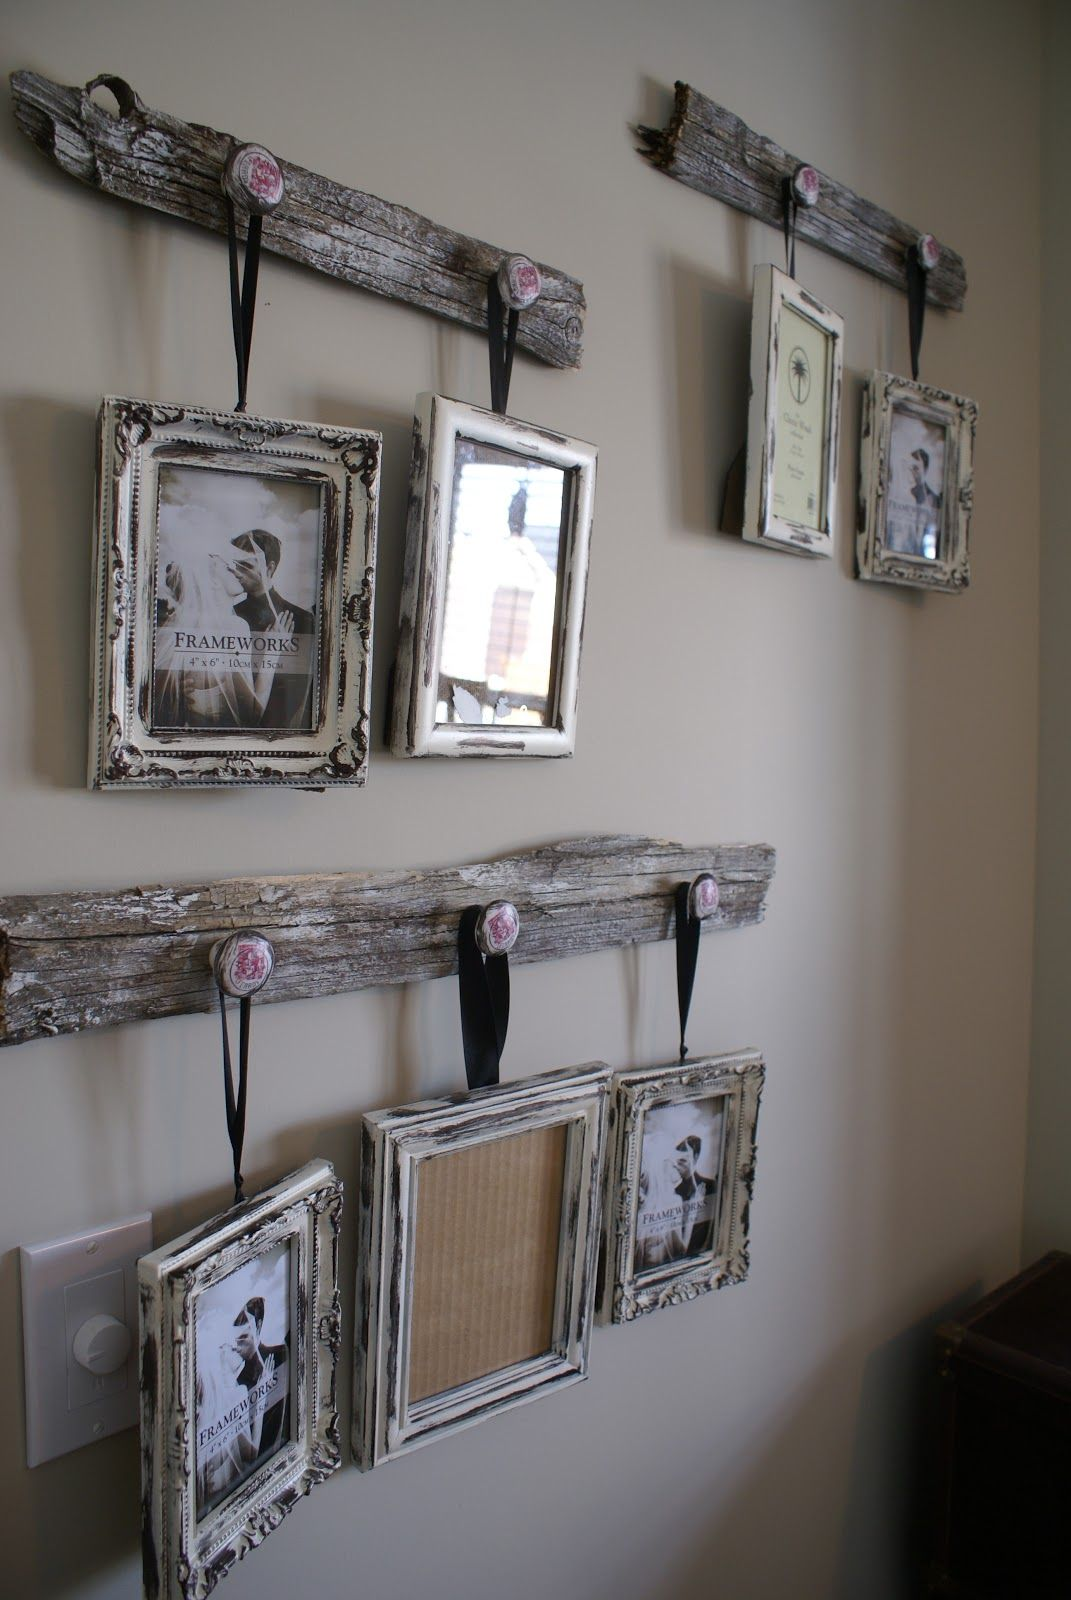 27 Rustic Wall Decor Ideas to Turn Shabby into Fabulous | Picture ...